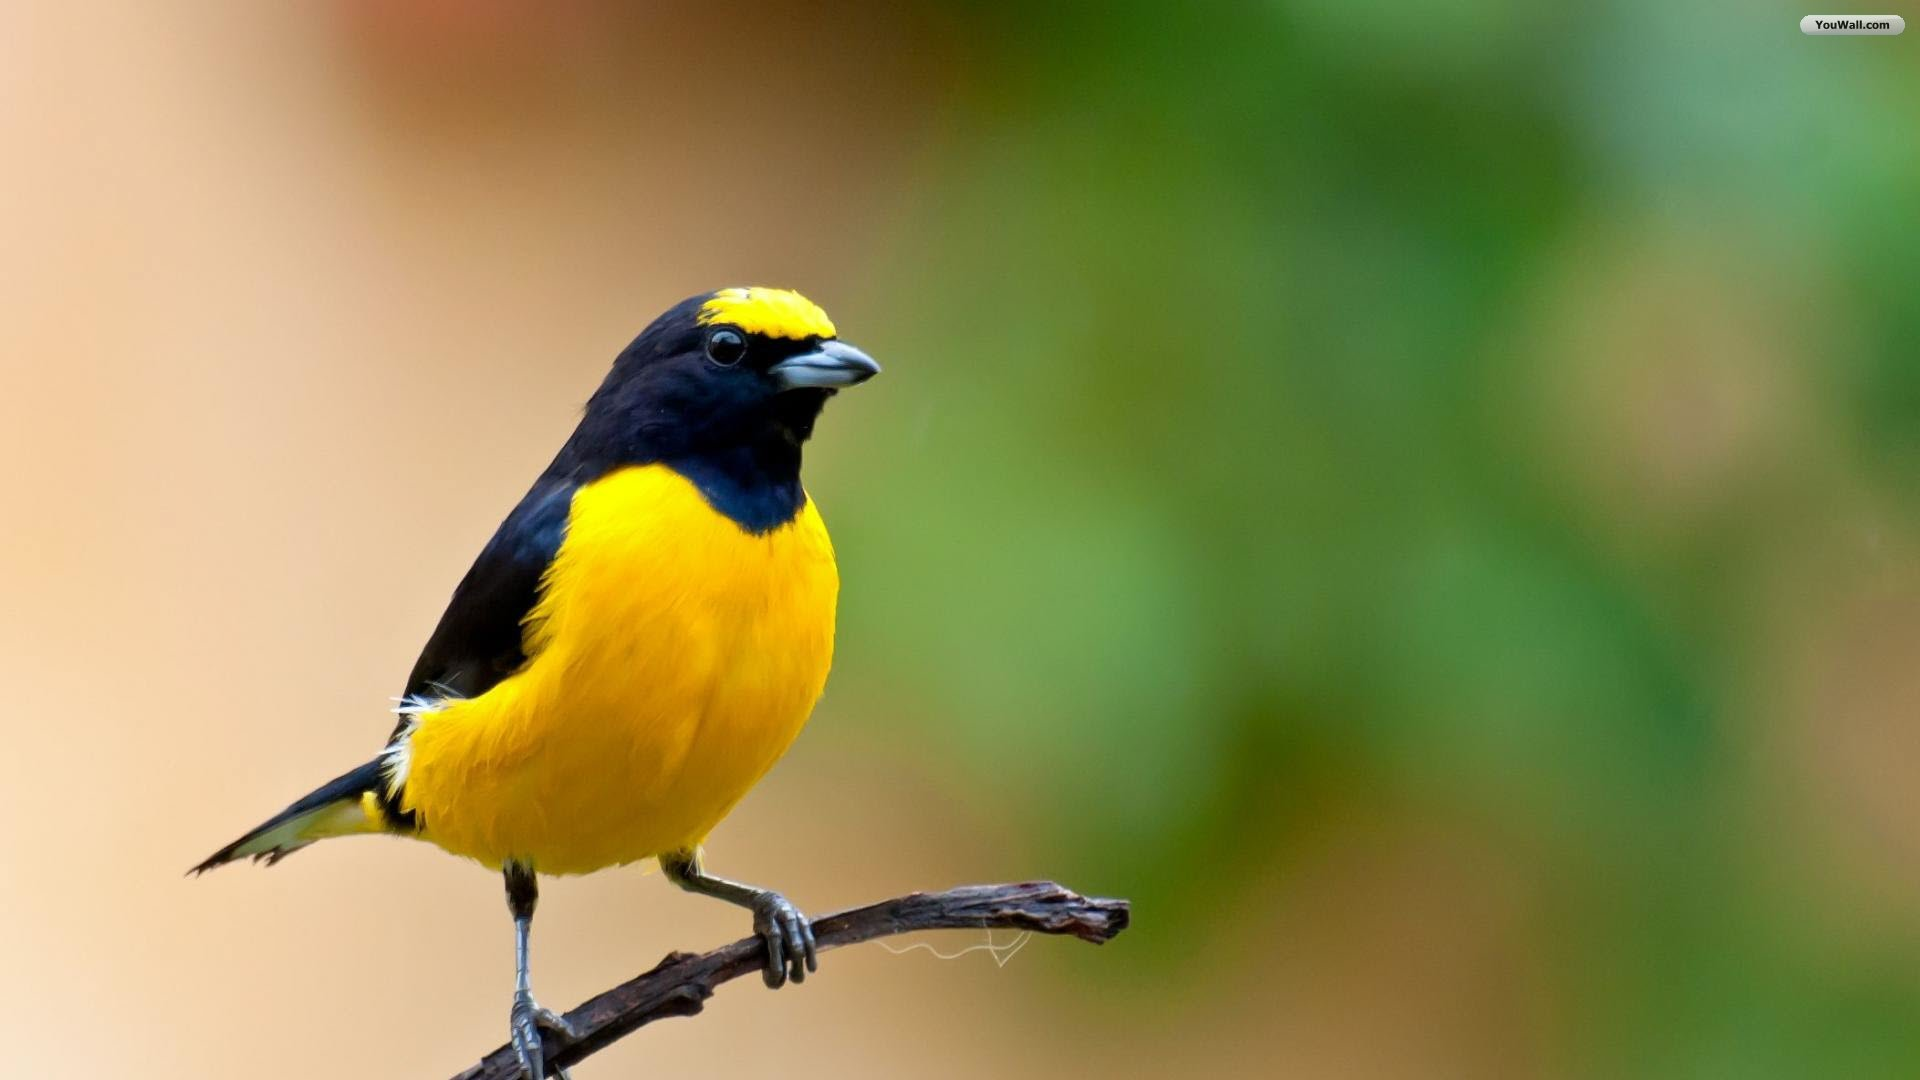 Visit this page for the names of most beautiful birds in the world.